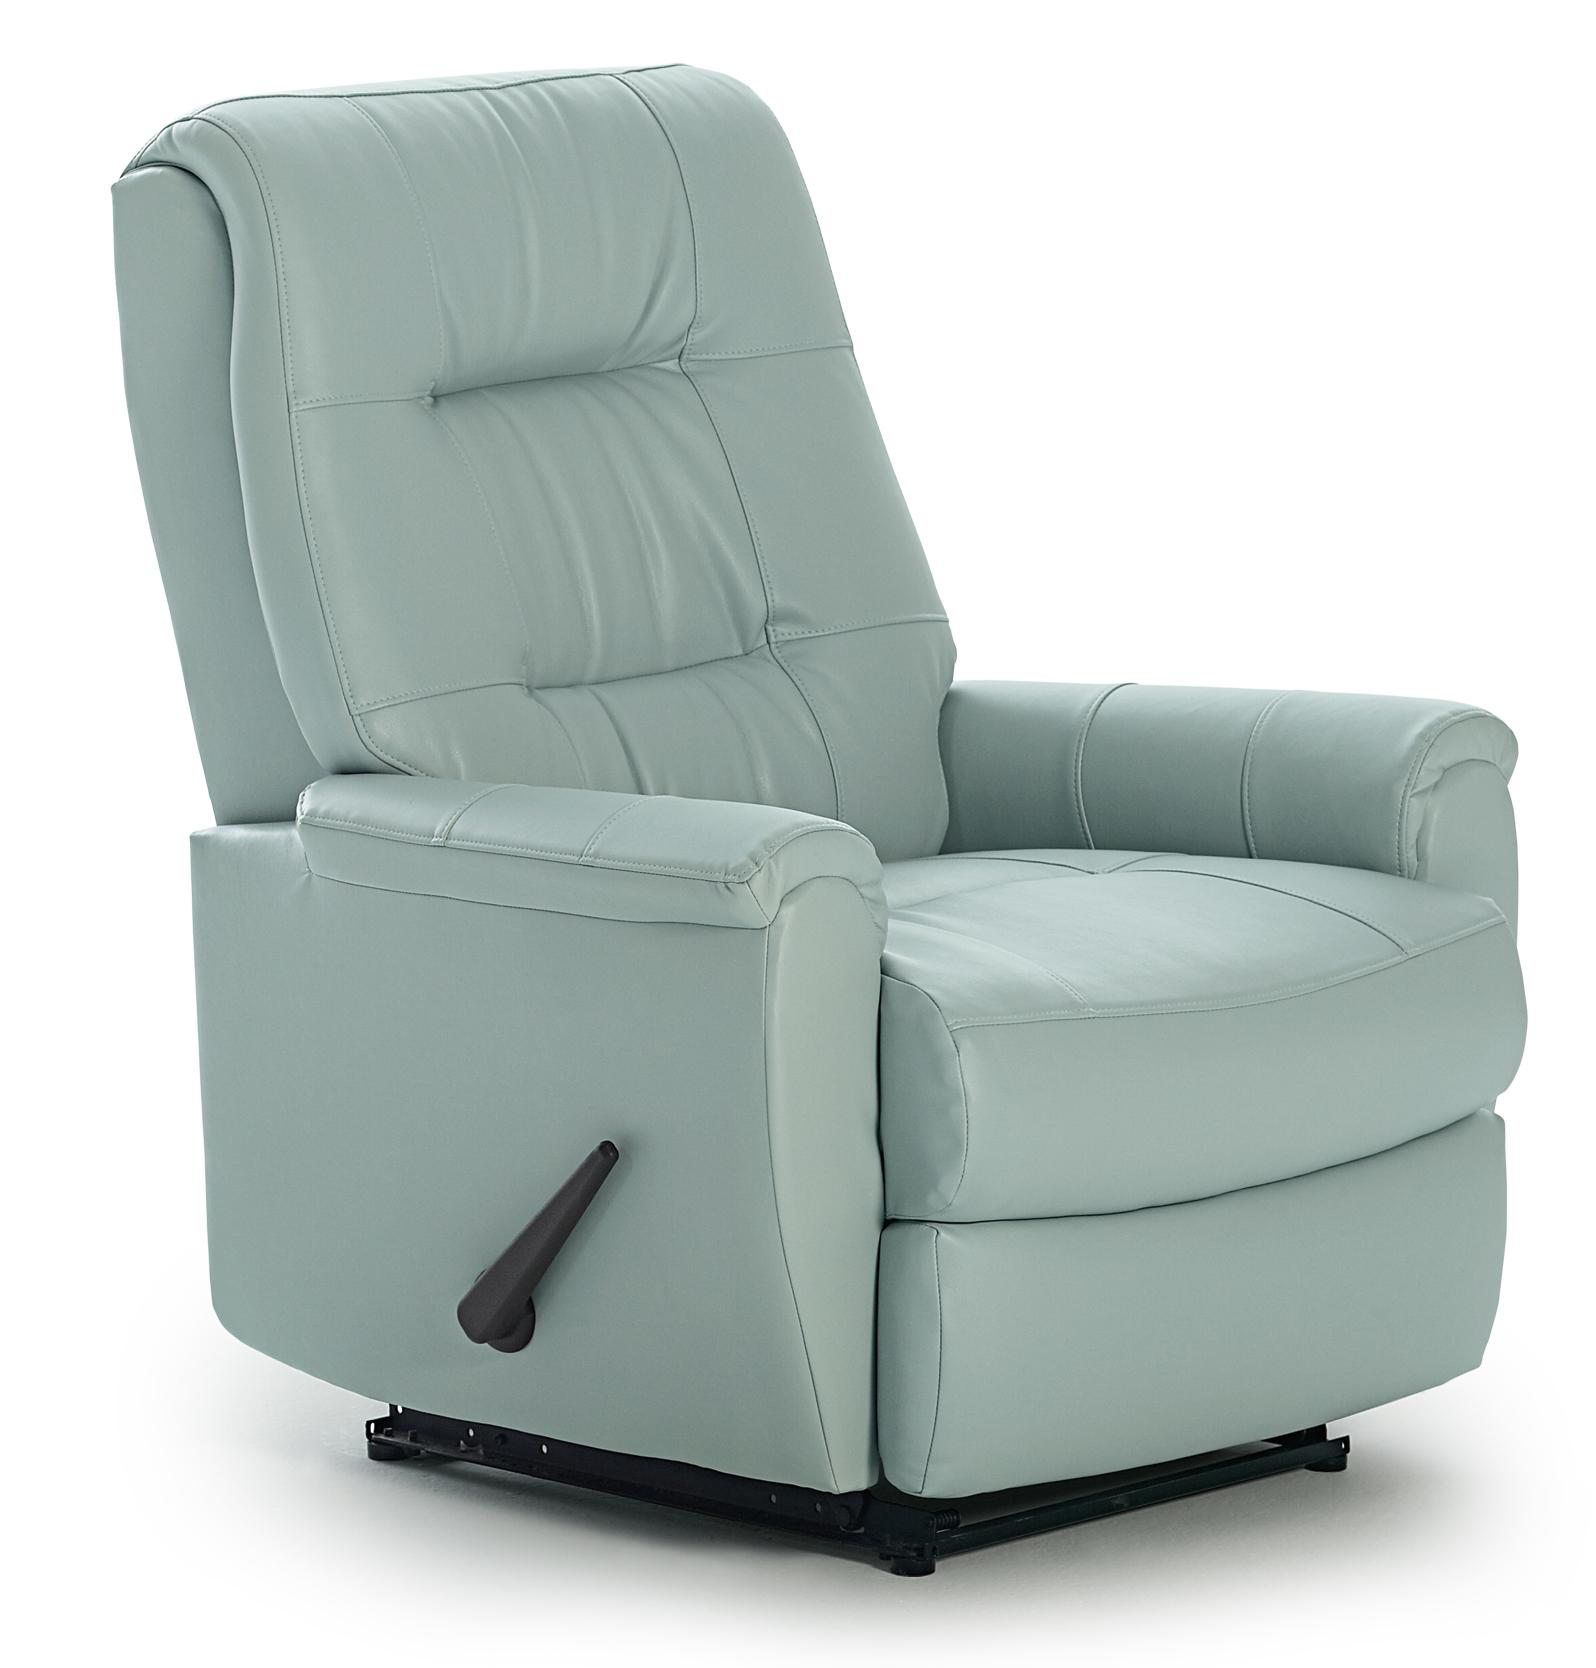 Merveilleux Best Home Furnishings Petite Recliners Swivel Glider Recliner   Item  Number: 2A75L